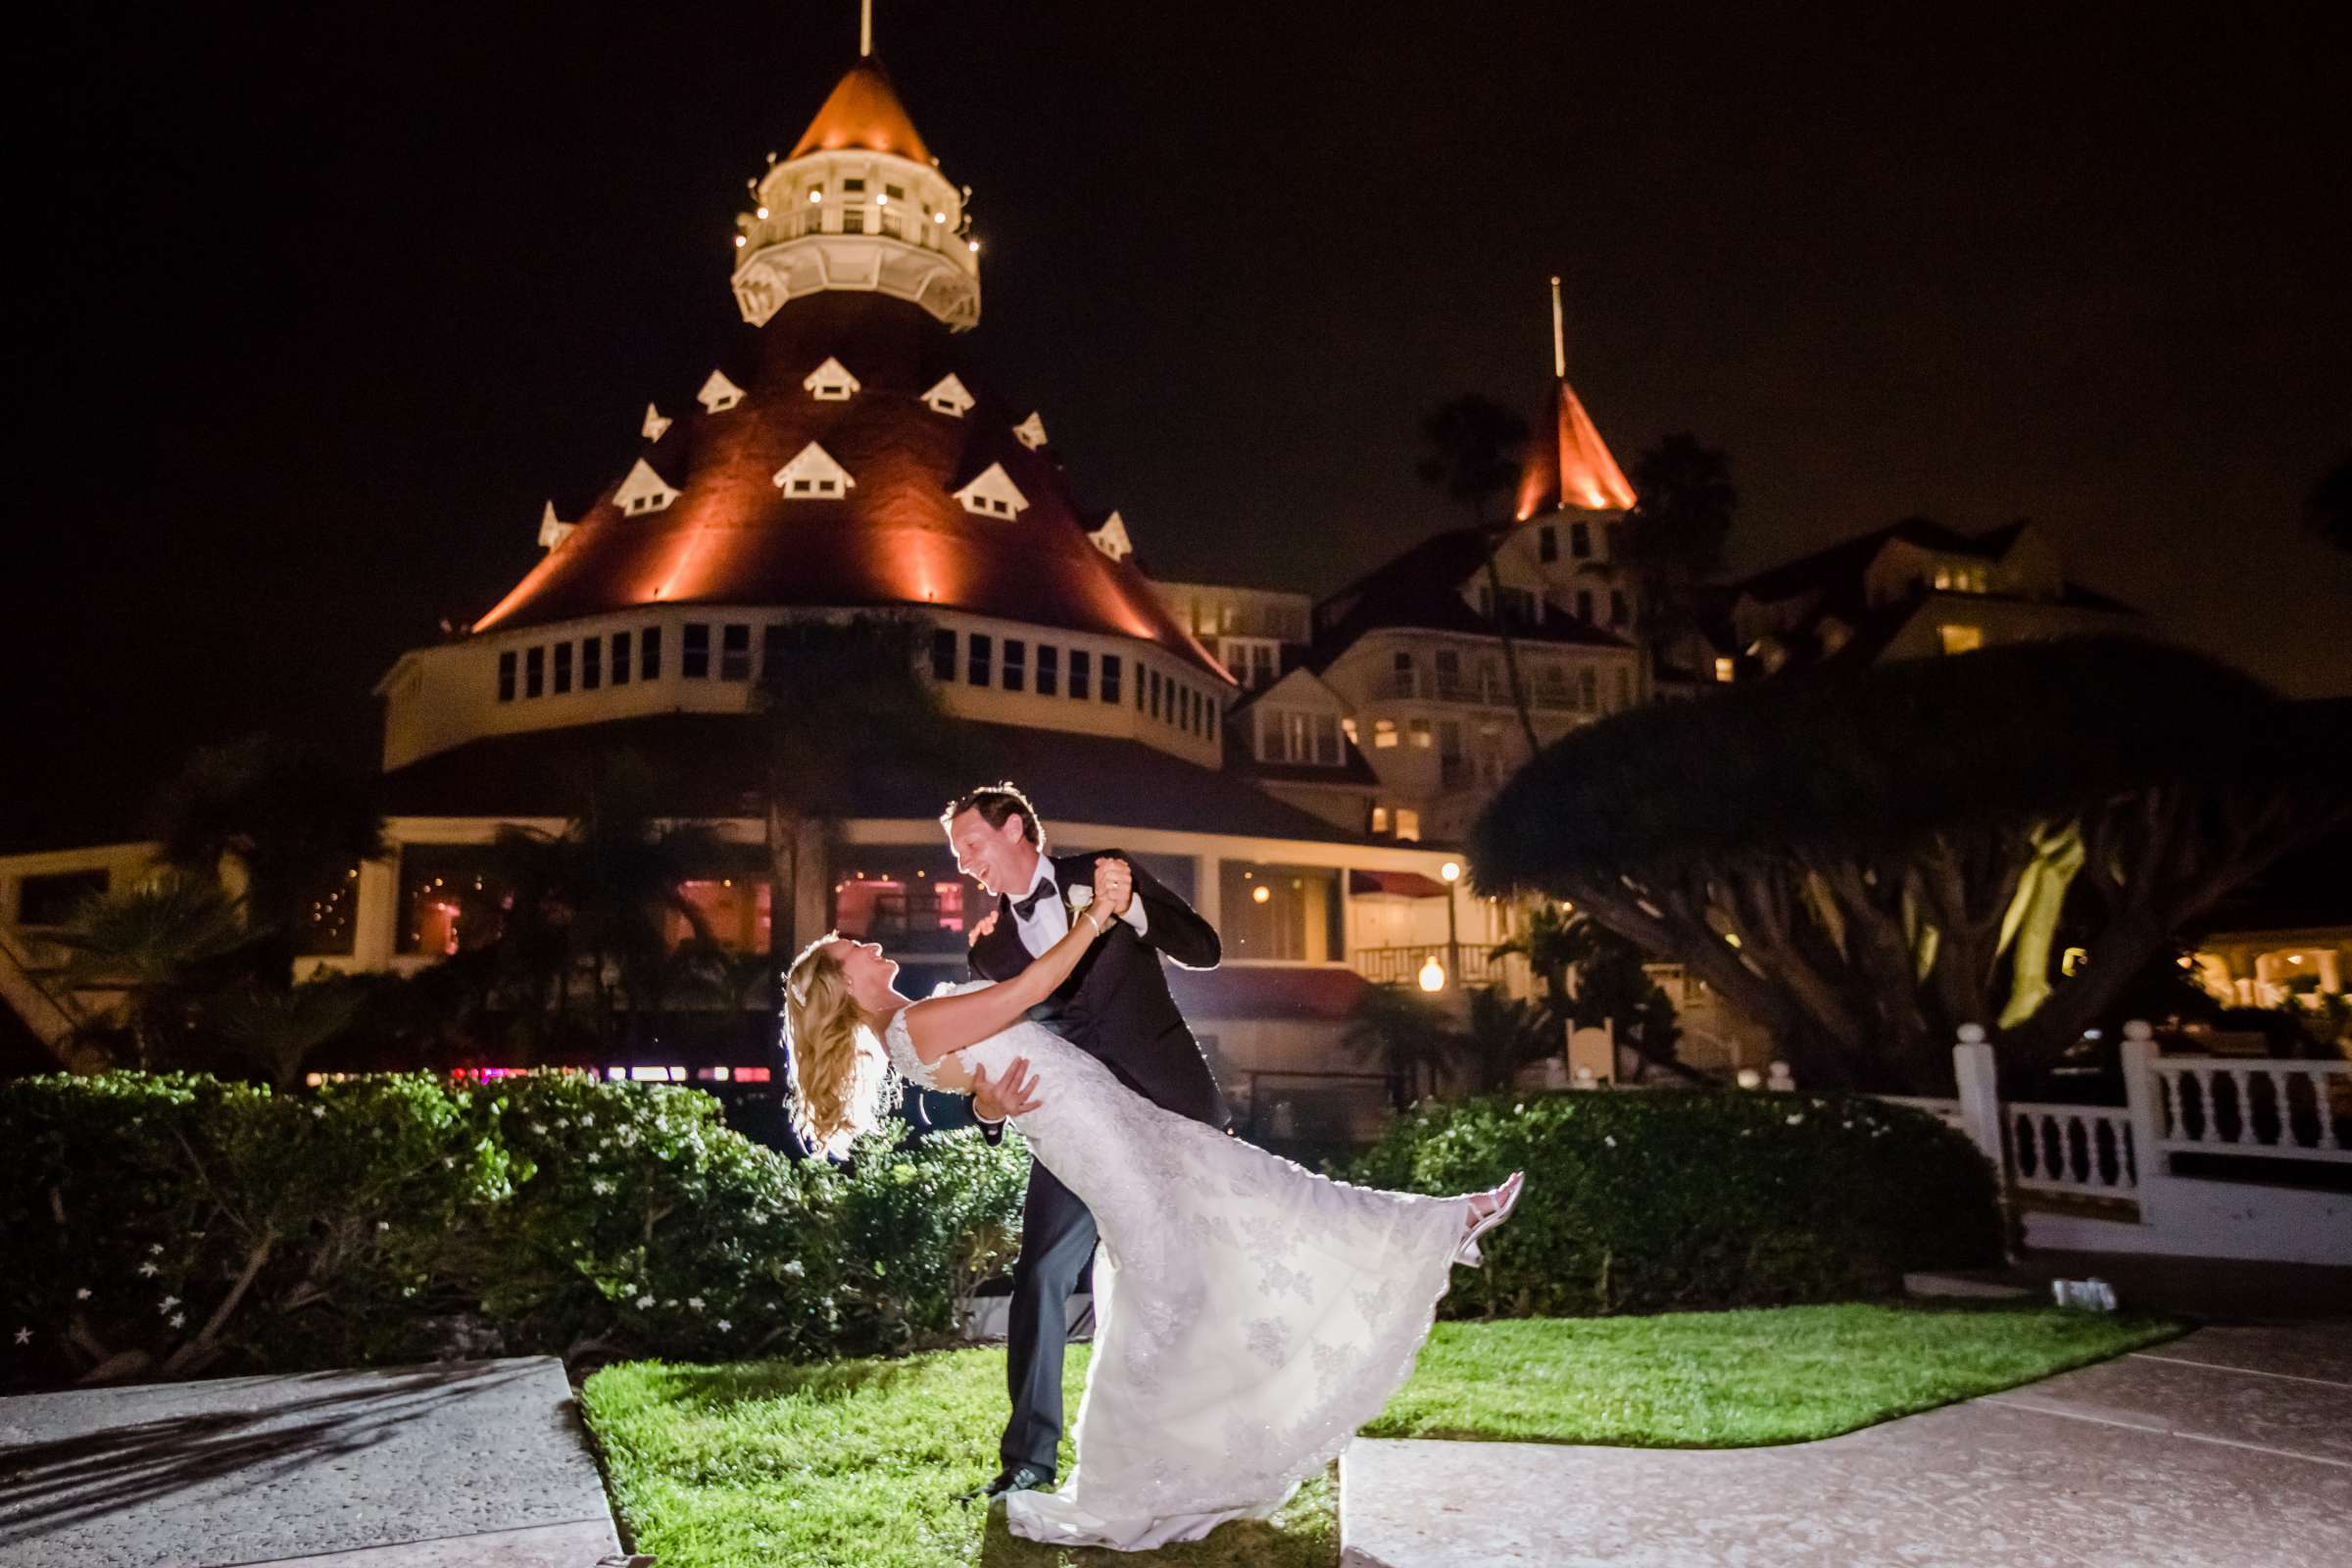 Hotel Del Coronado Wedding coordinated by Creative Affairs Inc, Diane and Paul Wedding Photo #18 by True Photography